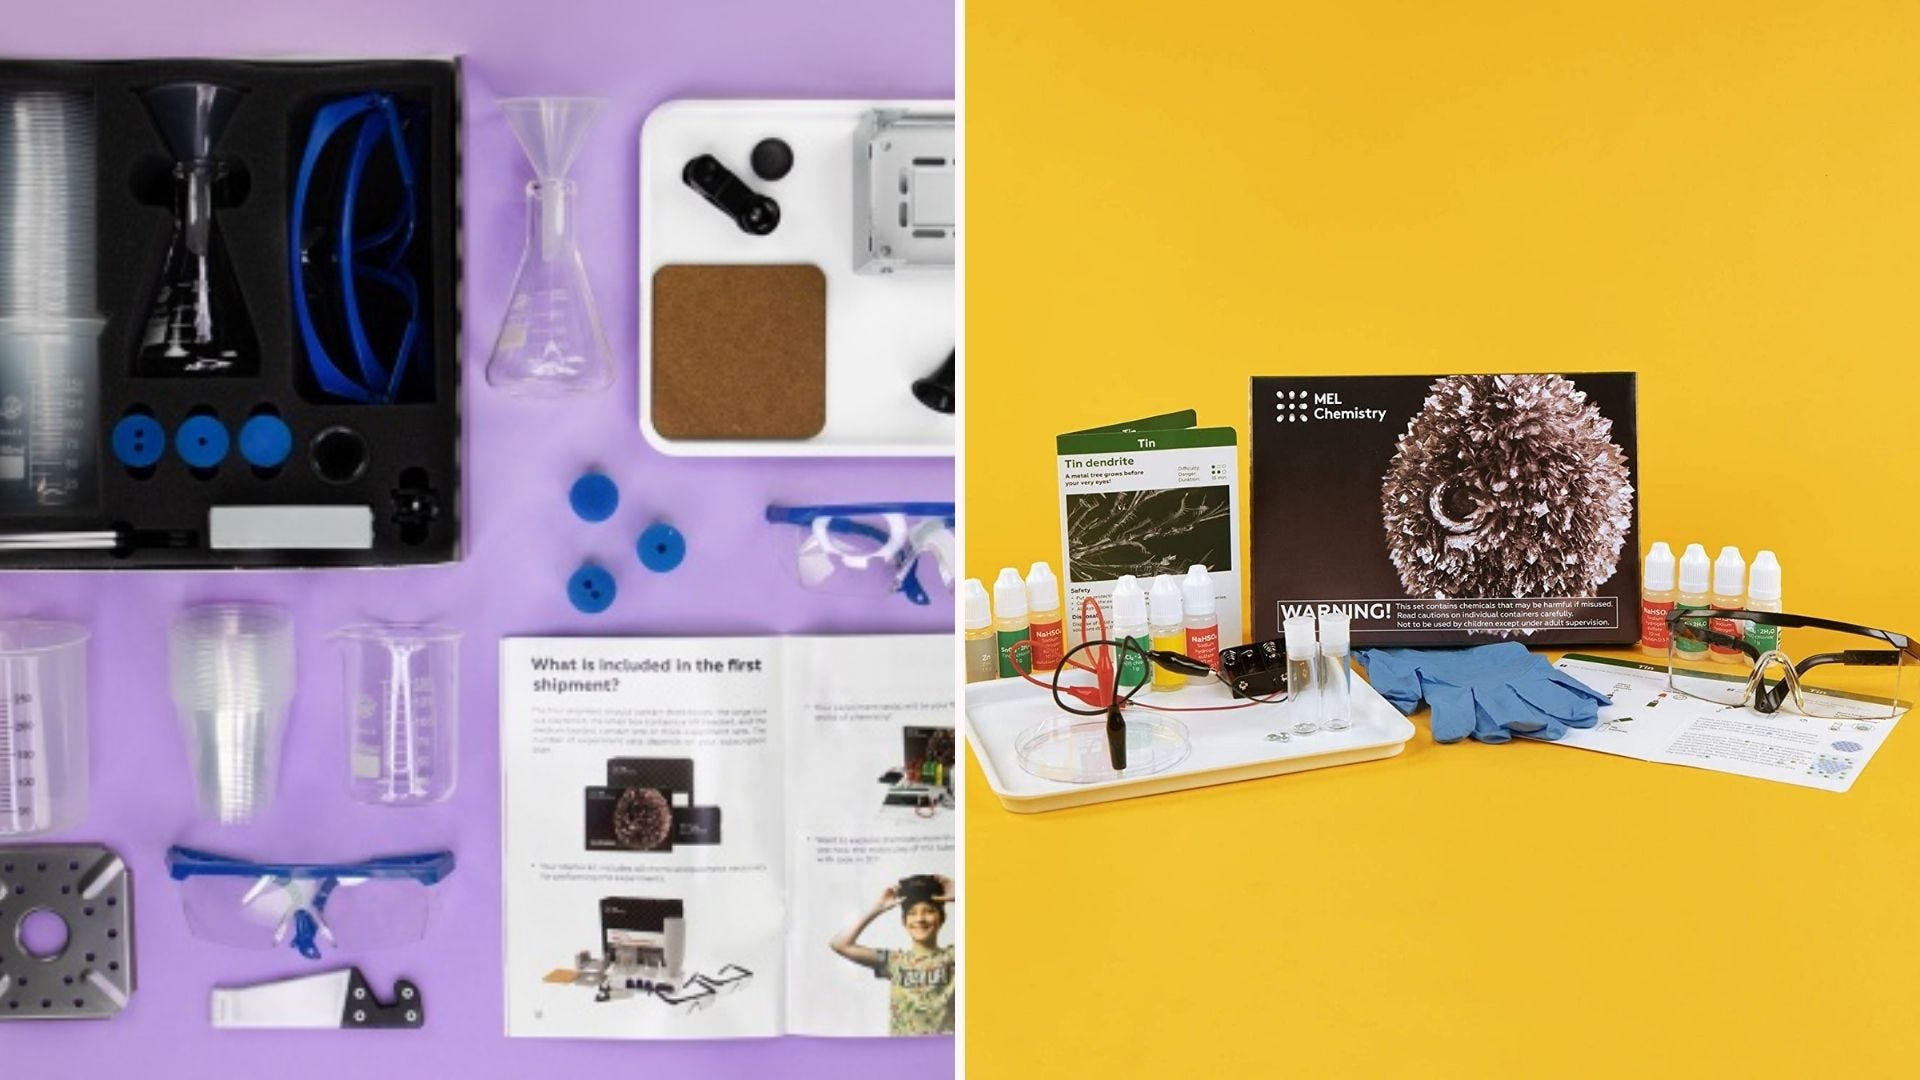 A set of chemistry supplies laid out on a purple background; a full kit on a yellow background